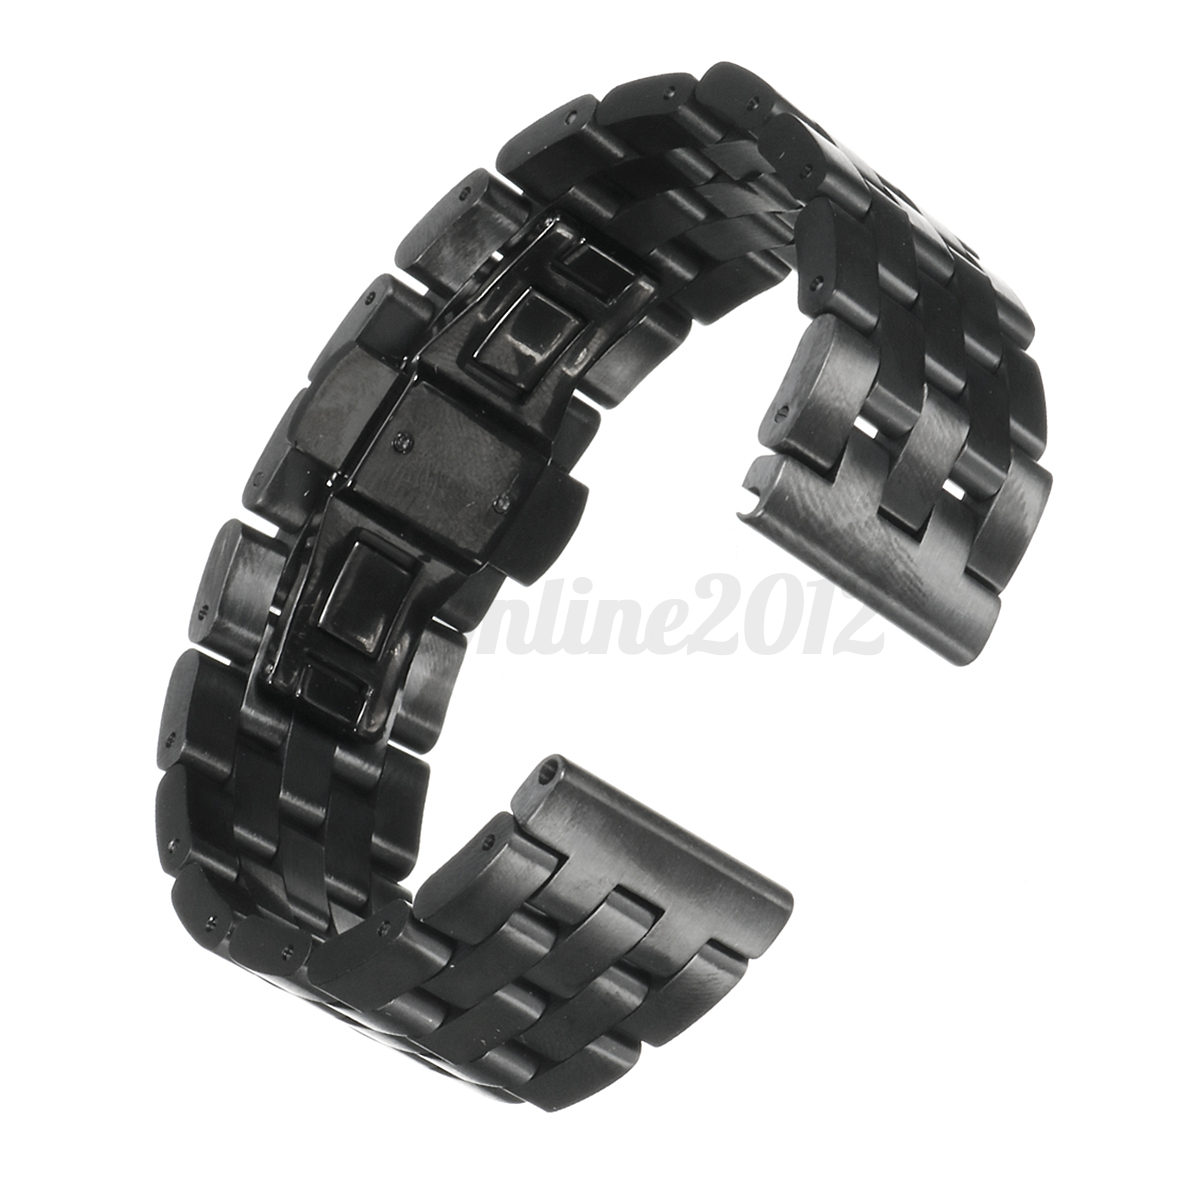 22mm replacement metal wristband watch band strap bracelet for samsung gear s3 ebay. Black Bedroom Furniture Sets. Home Design Ideas